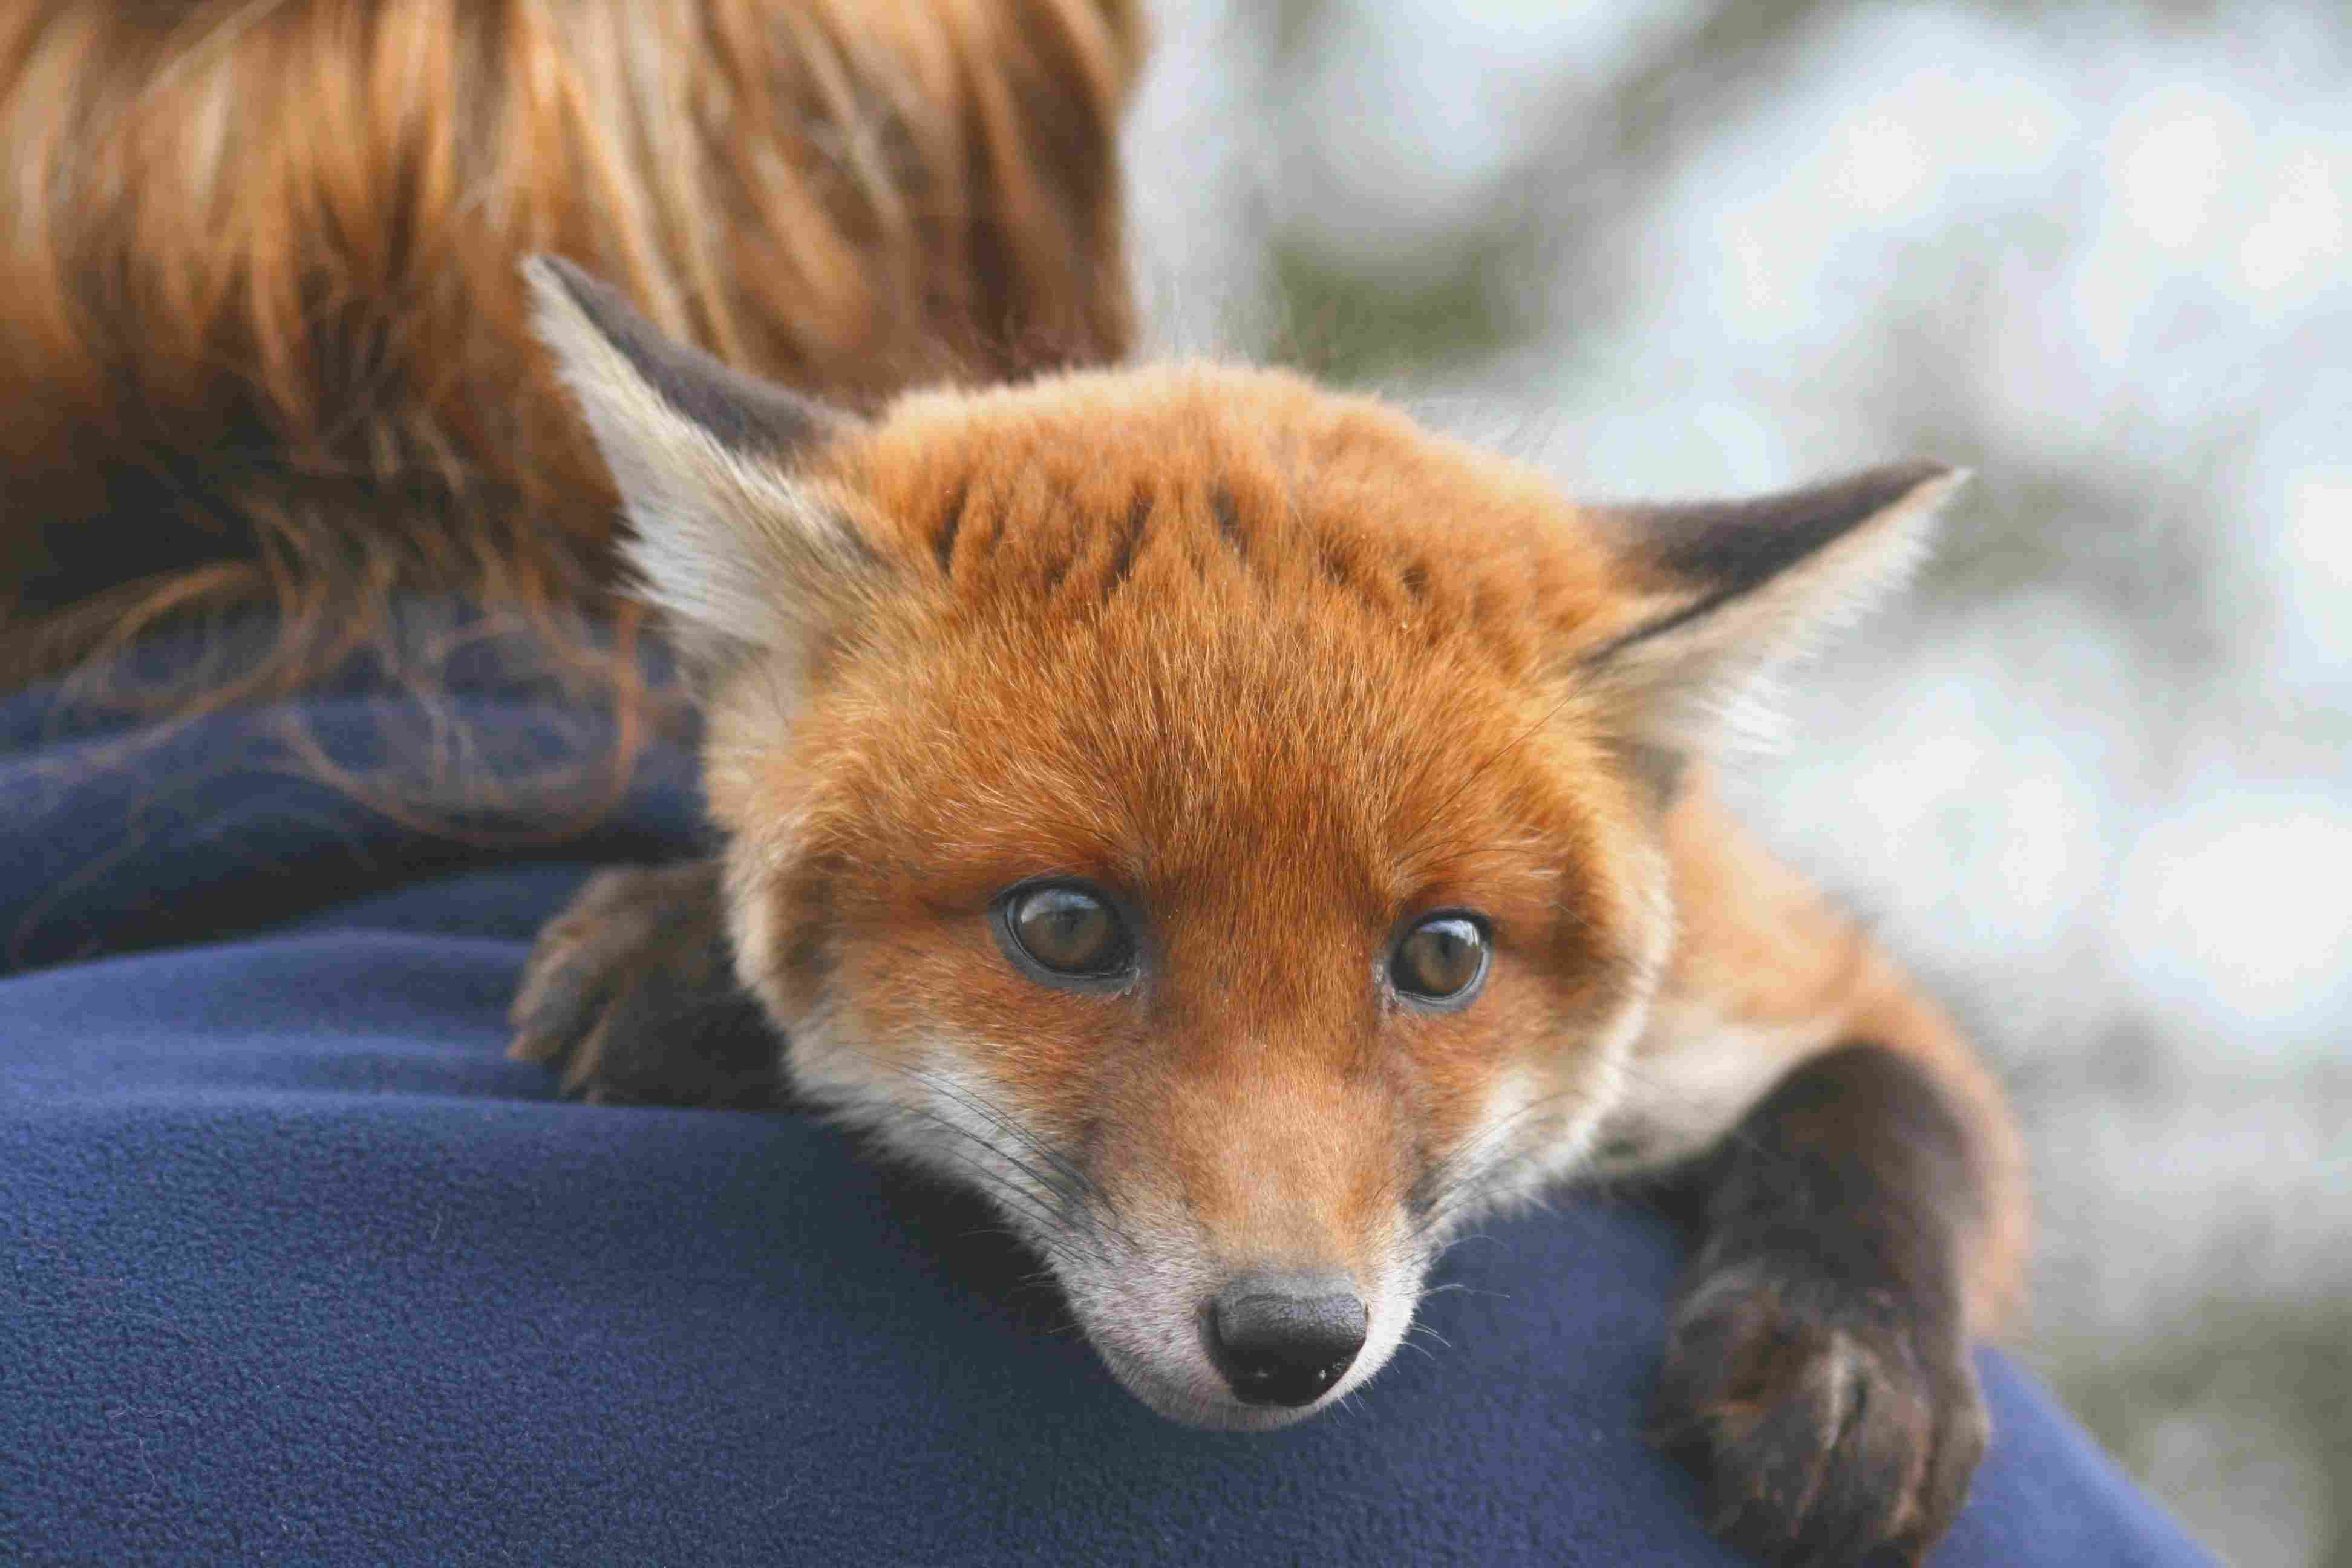 In some places it is legal to keep a red fox as a pet.